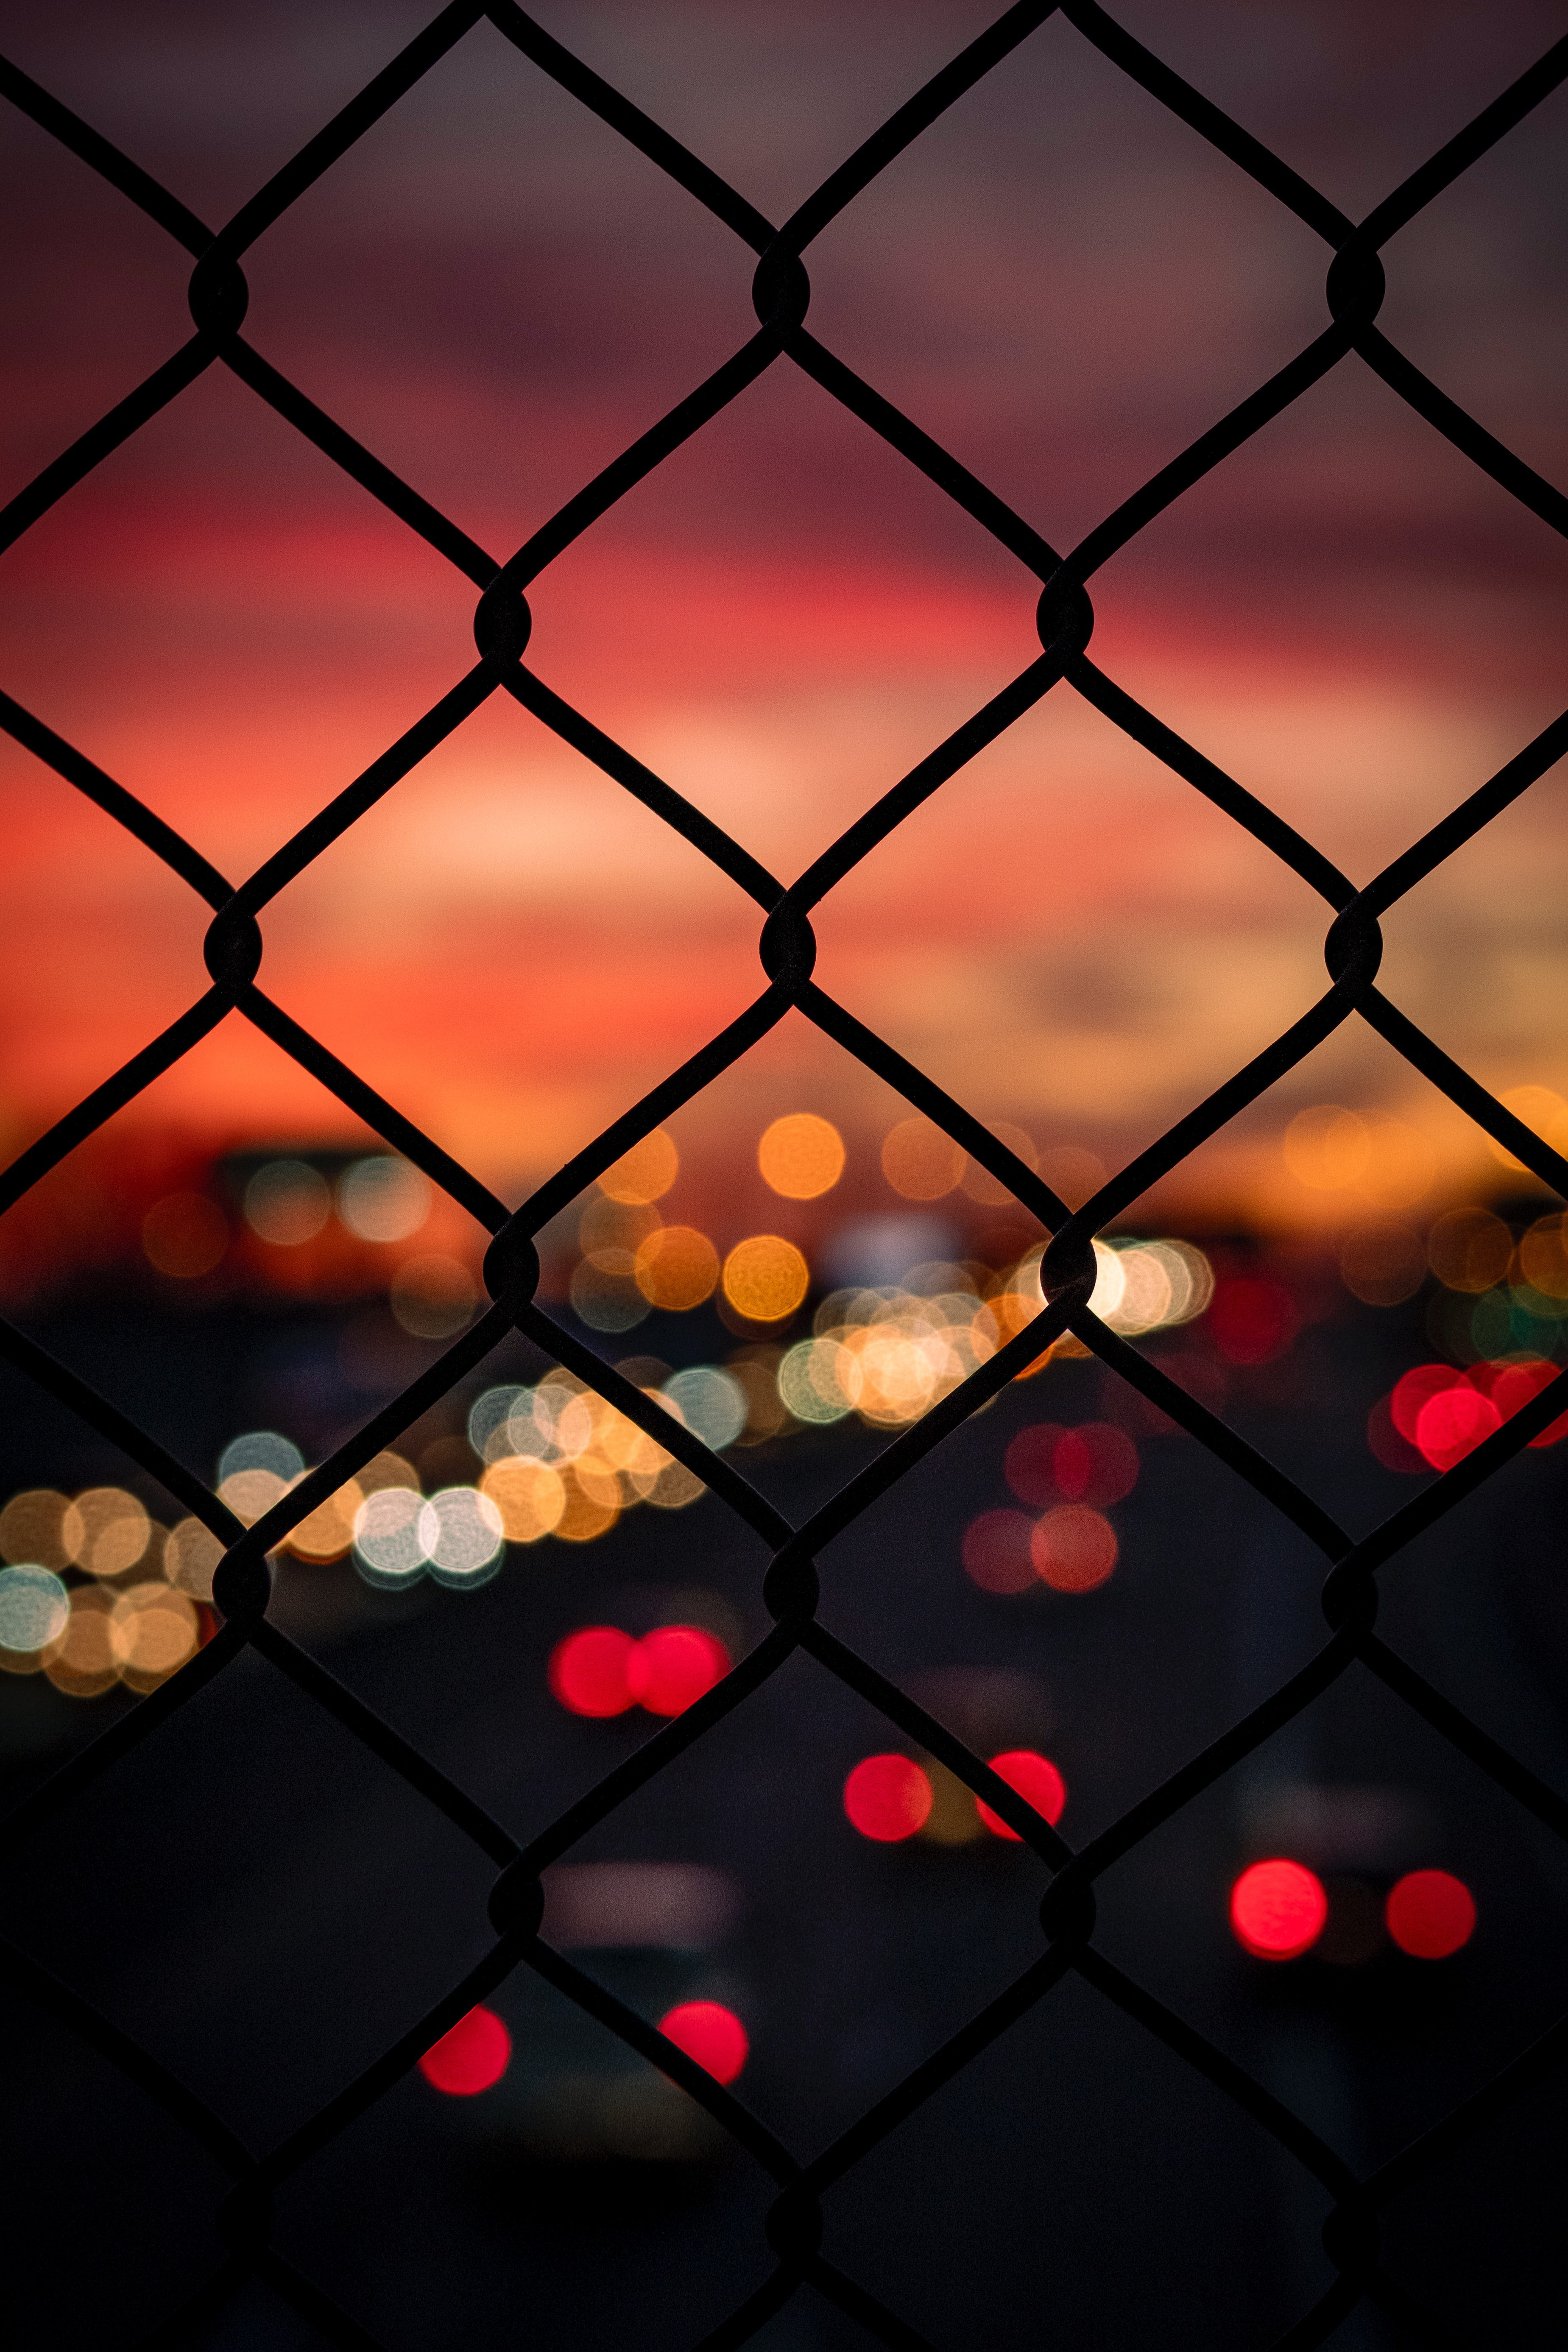 64480 download wallpaper Lights, Dark, Circles, Blur, Smooth, Grid, Bokeh, Boquet screensavers and pictures for free